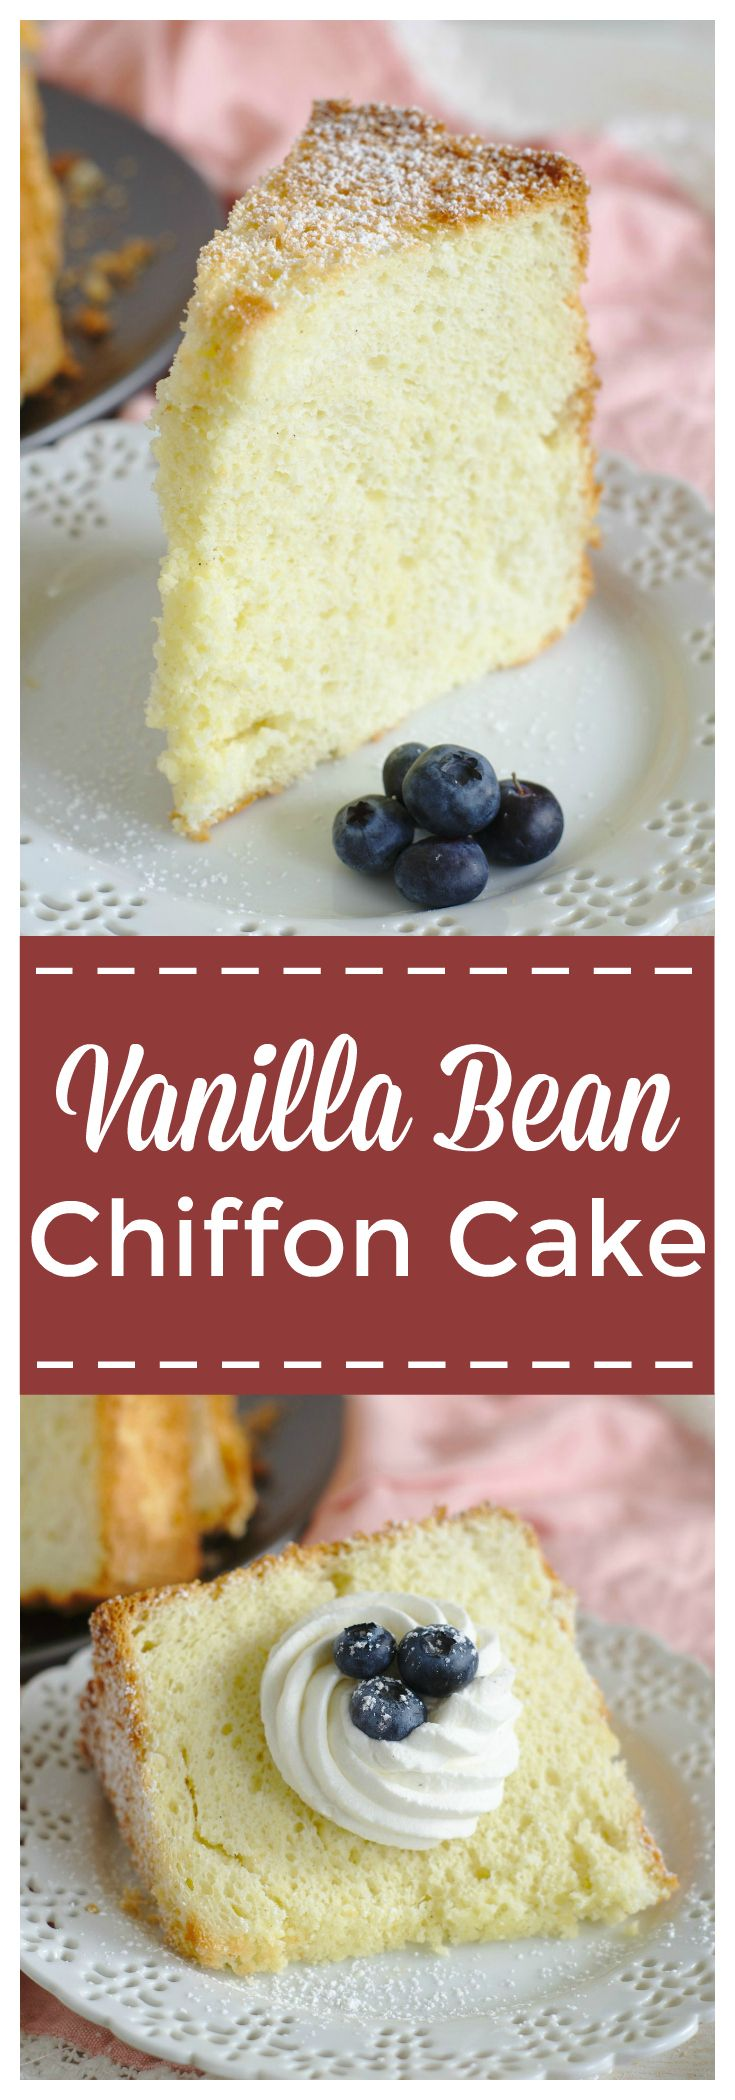 Vanilla Bean Chiffon Cake – A light and fluffy cake that melts in your mouth! This mile high cake is made with vanilla beans and topped with vanilla bean whipped cream! Vanilla Bean Chiffon Cake is perfect for birthdays or a simple, yet elegant dessert! #cake #dessert #vanilla #chiffoncake